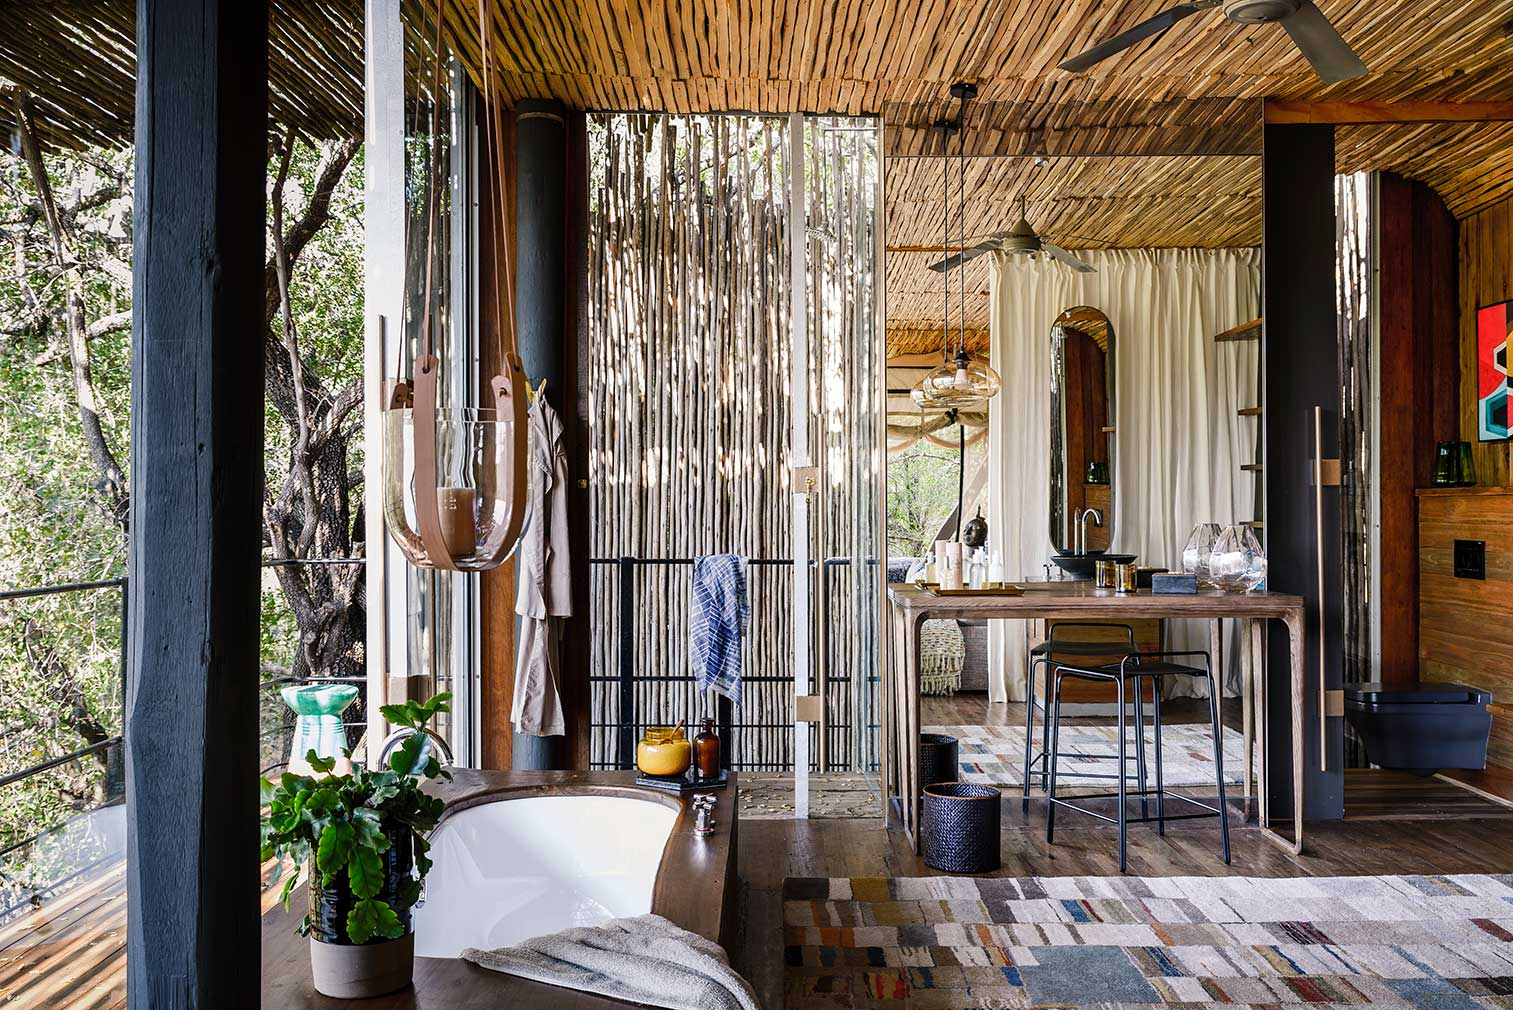 Singita Sweni safari lodge in South Africa, designed by Cecile and Boyd